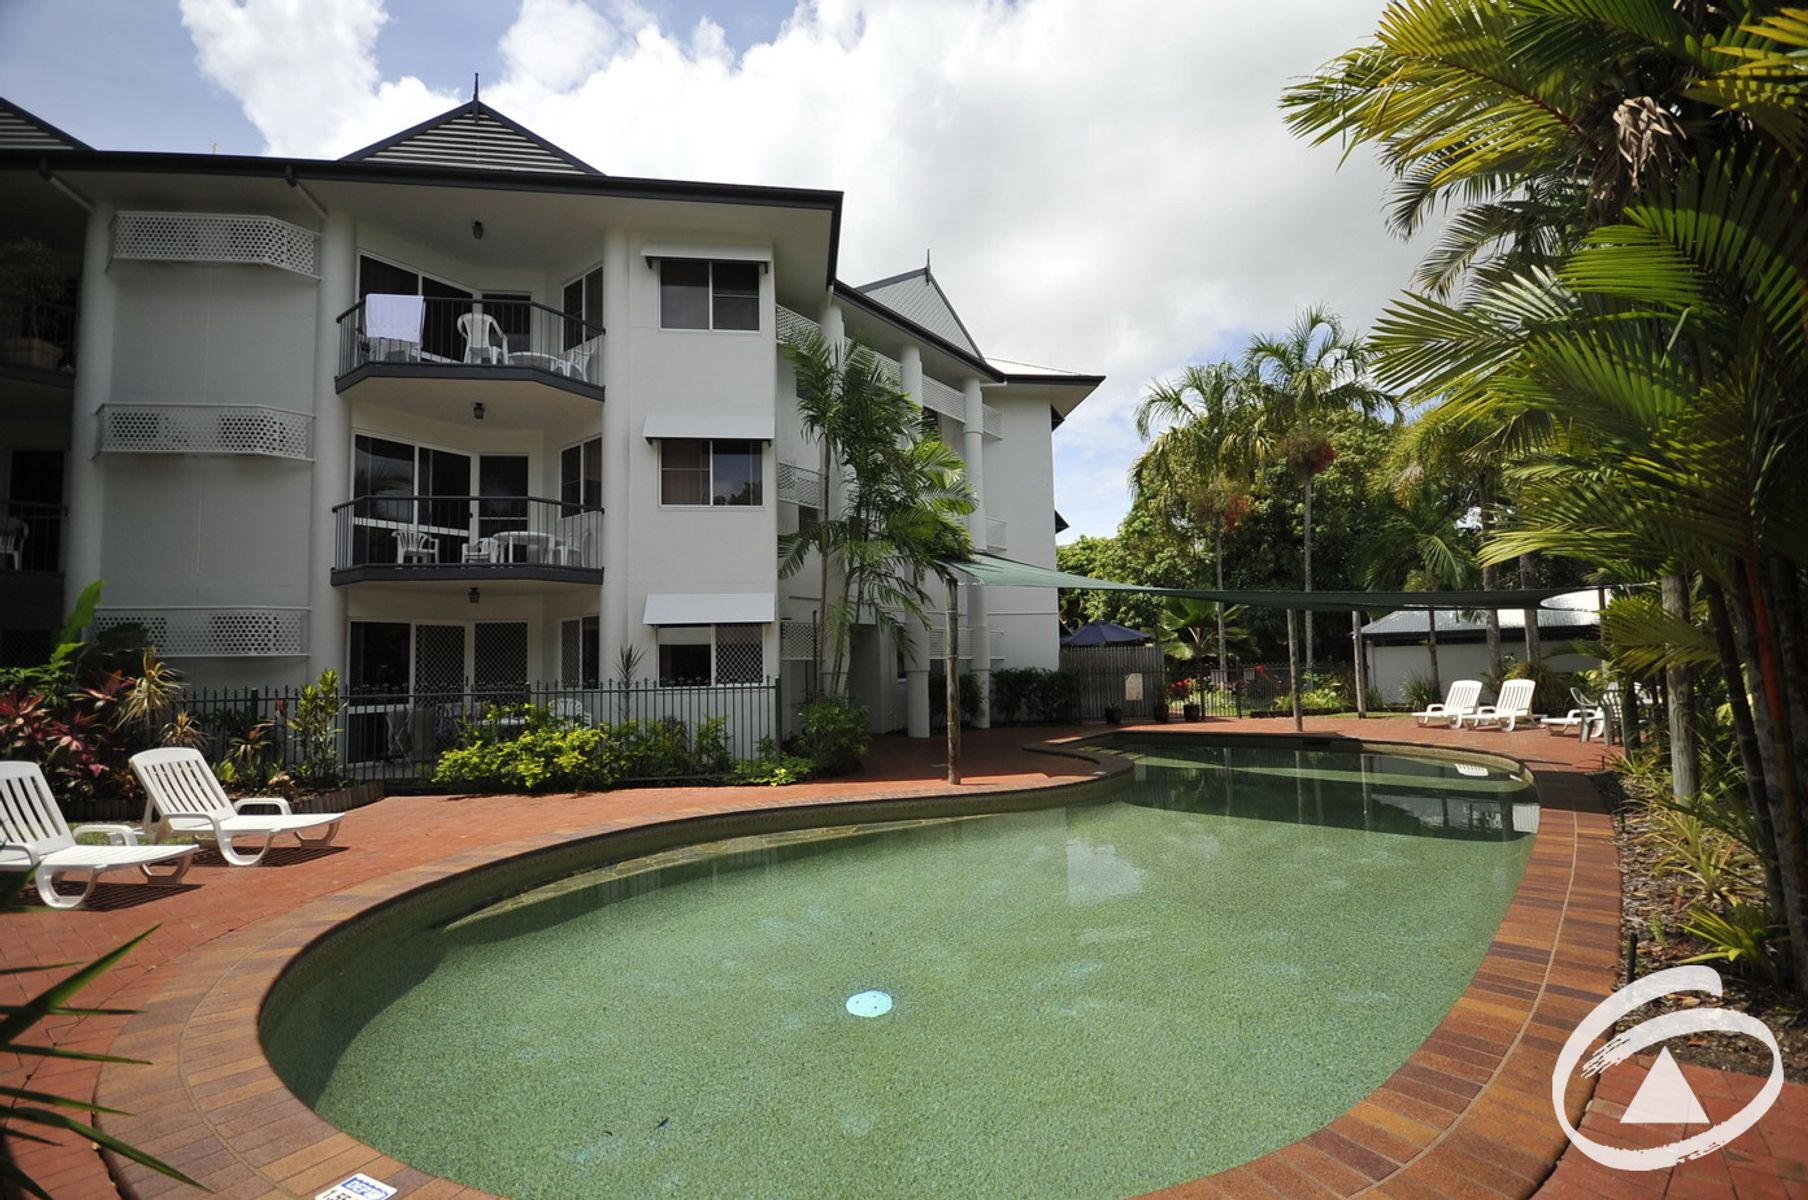 15/17A-17B Upward Street, Cairns City, QLD 4870